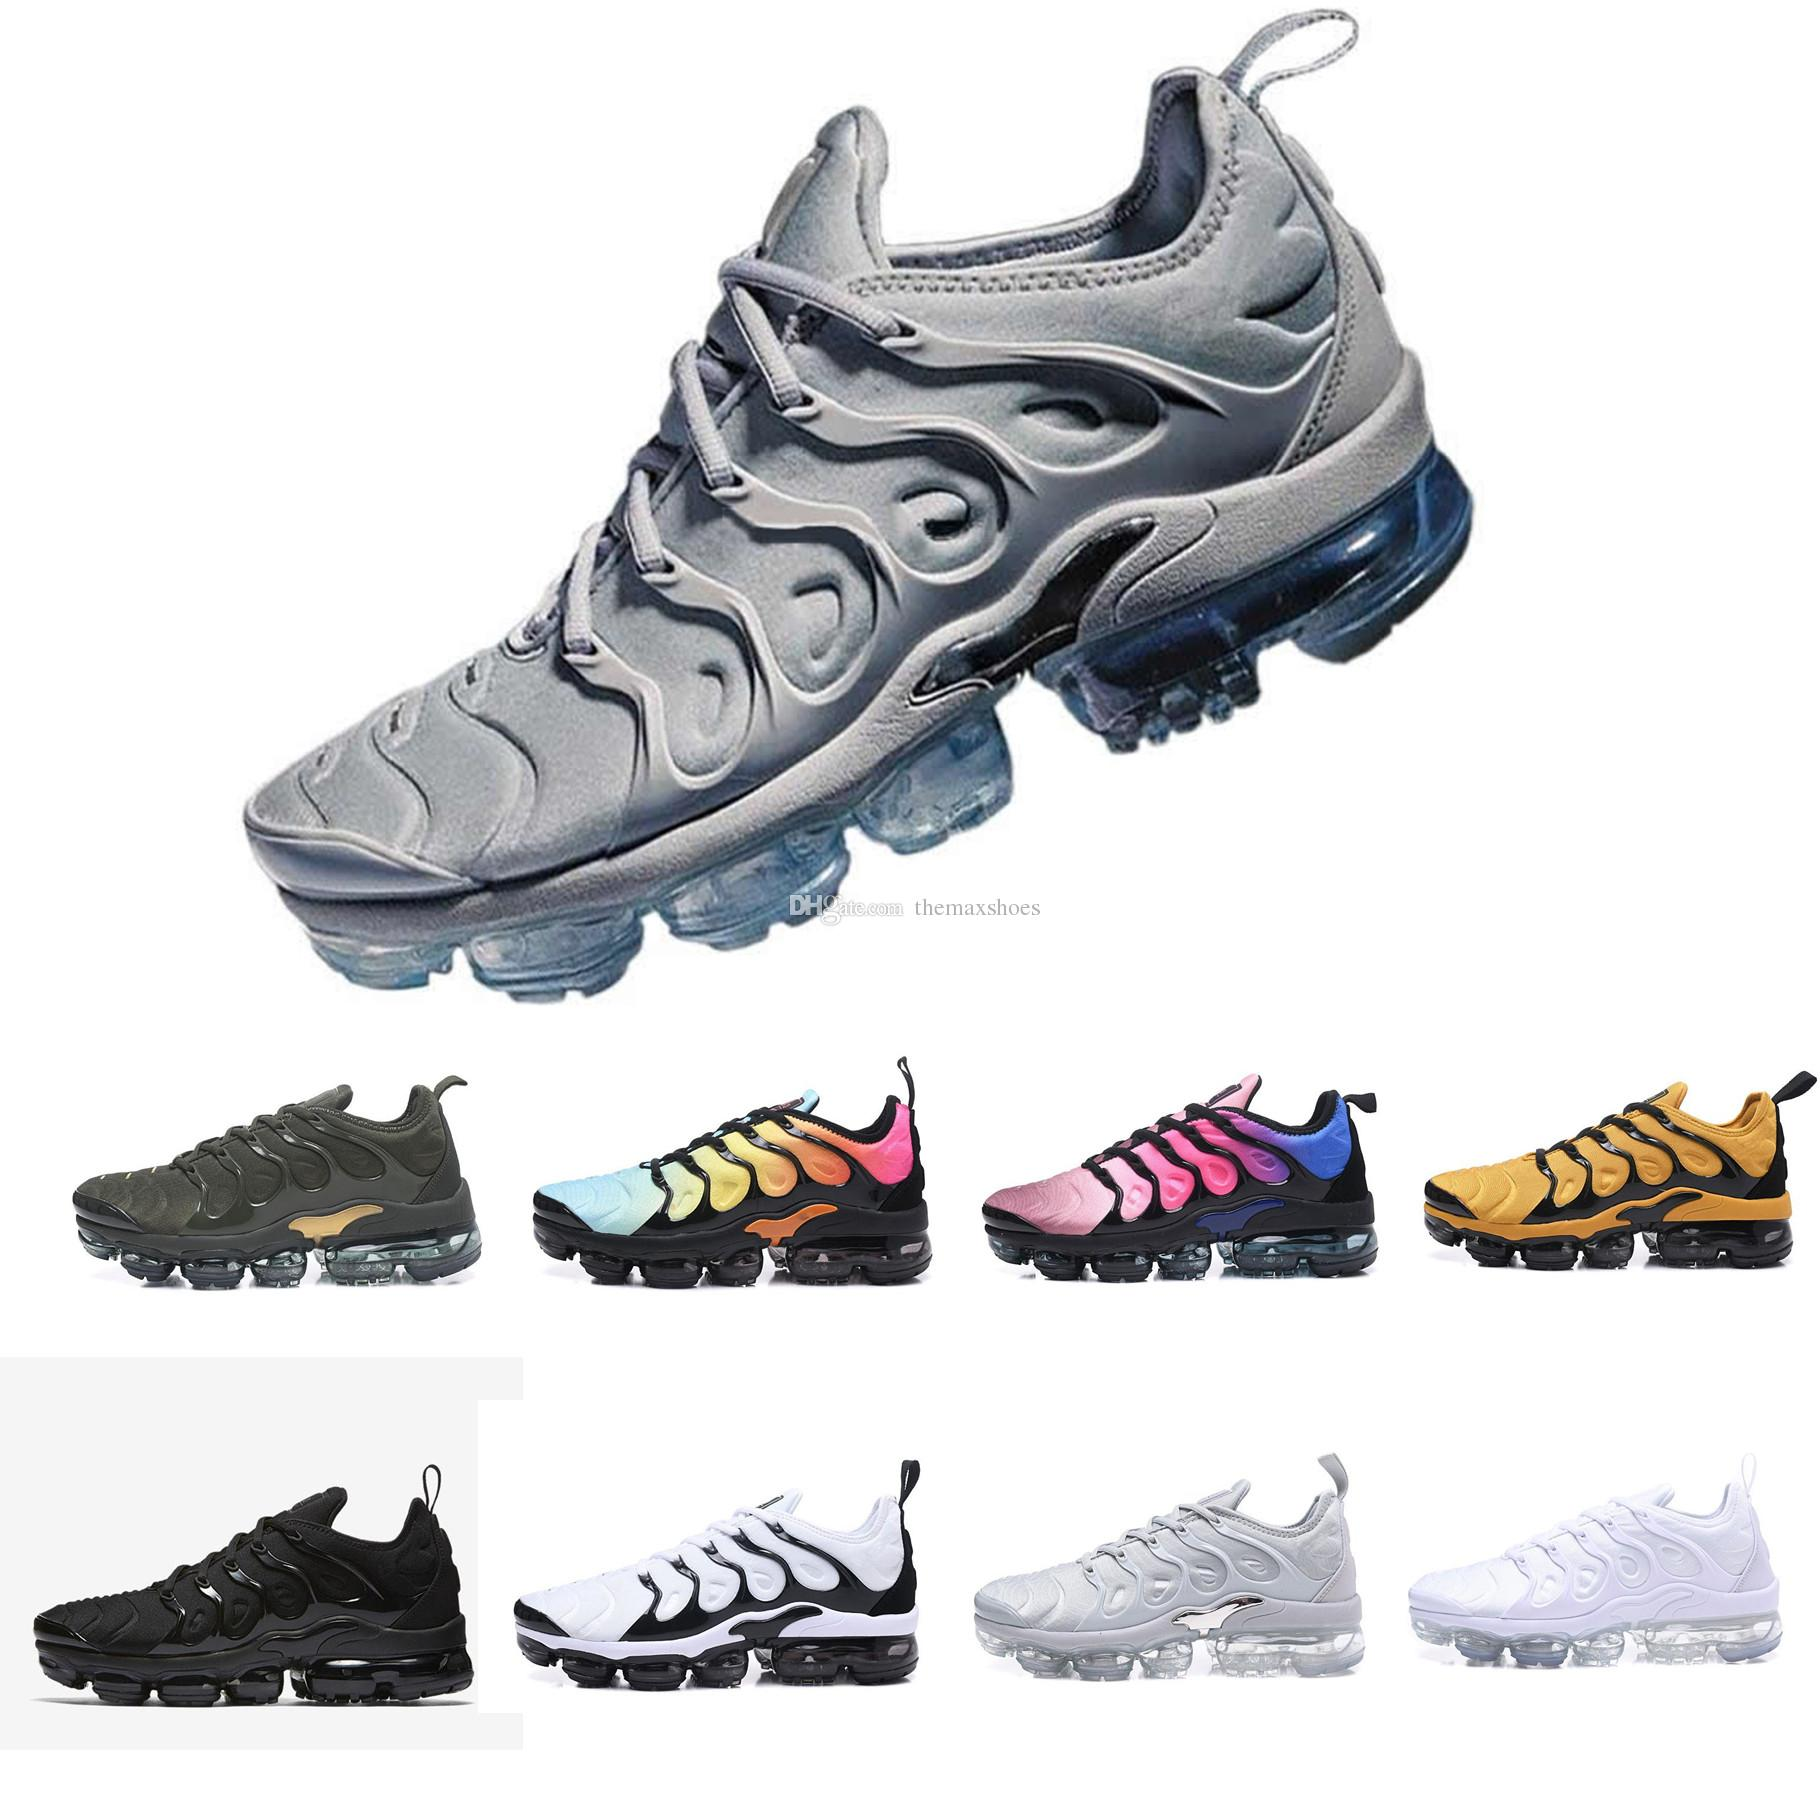 Vapors 2.0 High Quality Men and Women Running Shoes Sneakers Sports Shoes Black White Hiking Walking Shoes under $60 cheap price qwd3521ItK